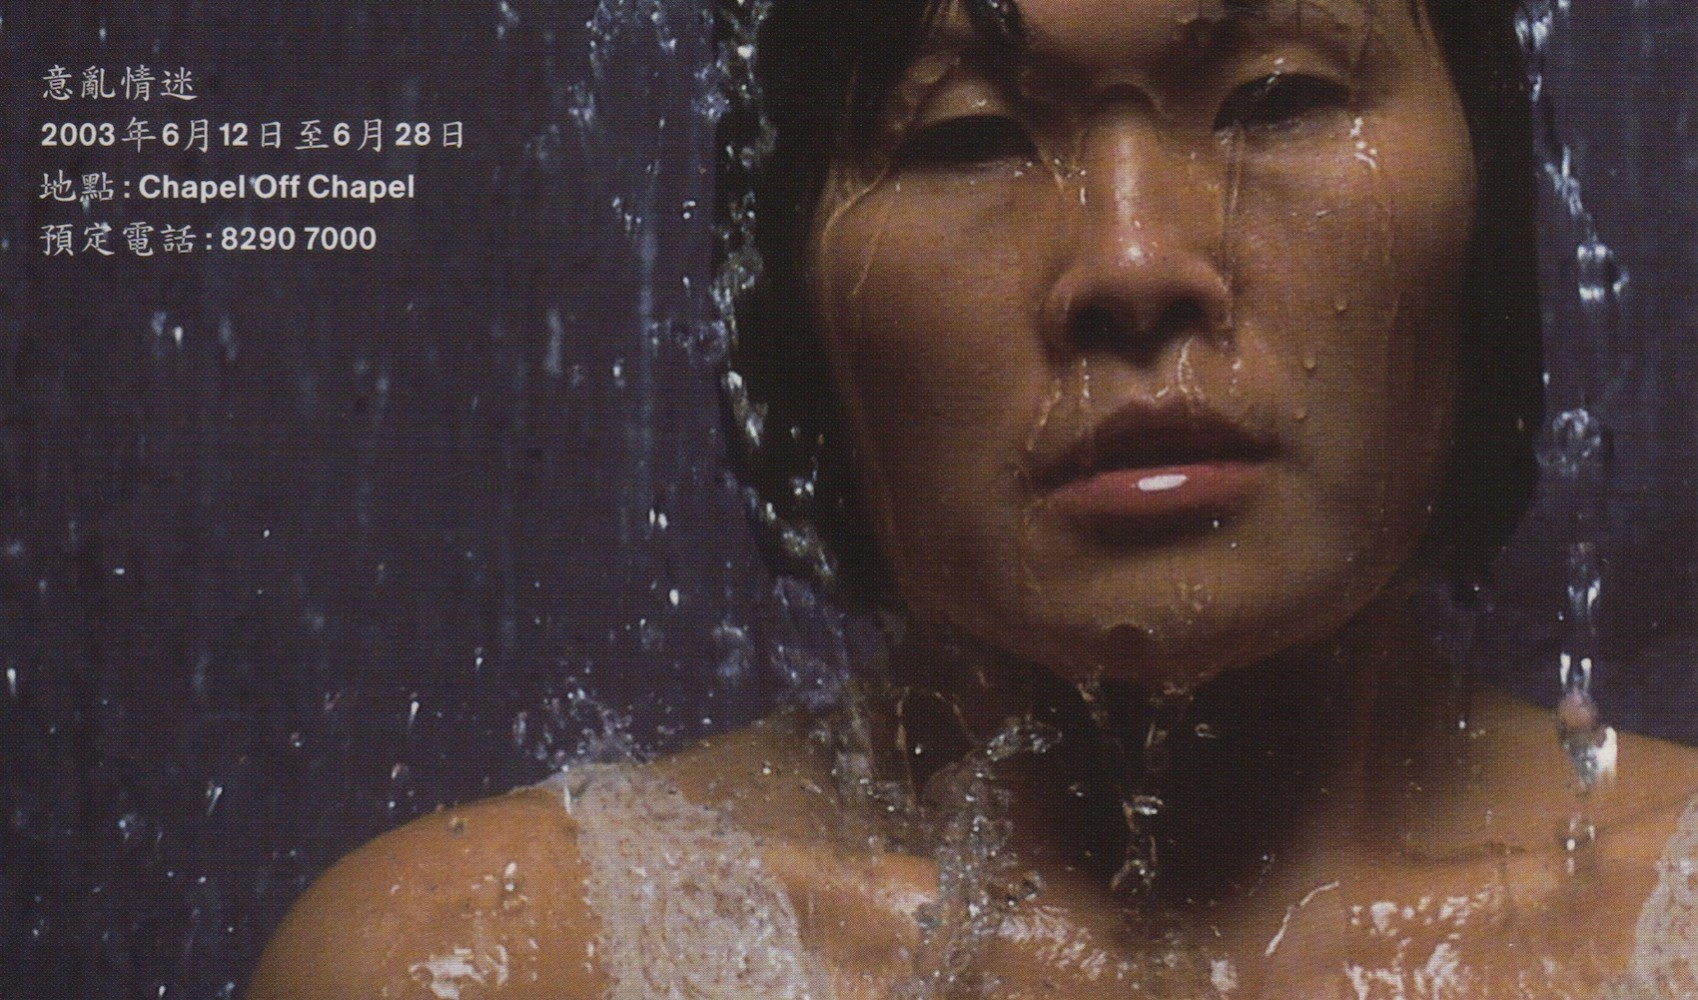 Promo flyer for The Possessed showing a woman's head and shoulders with water pouring over her